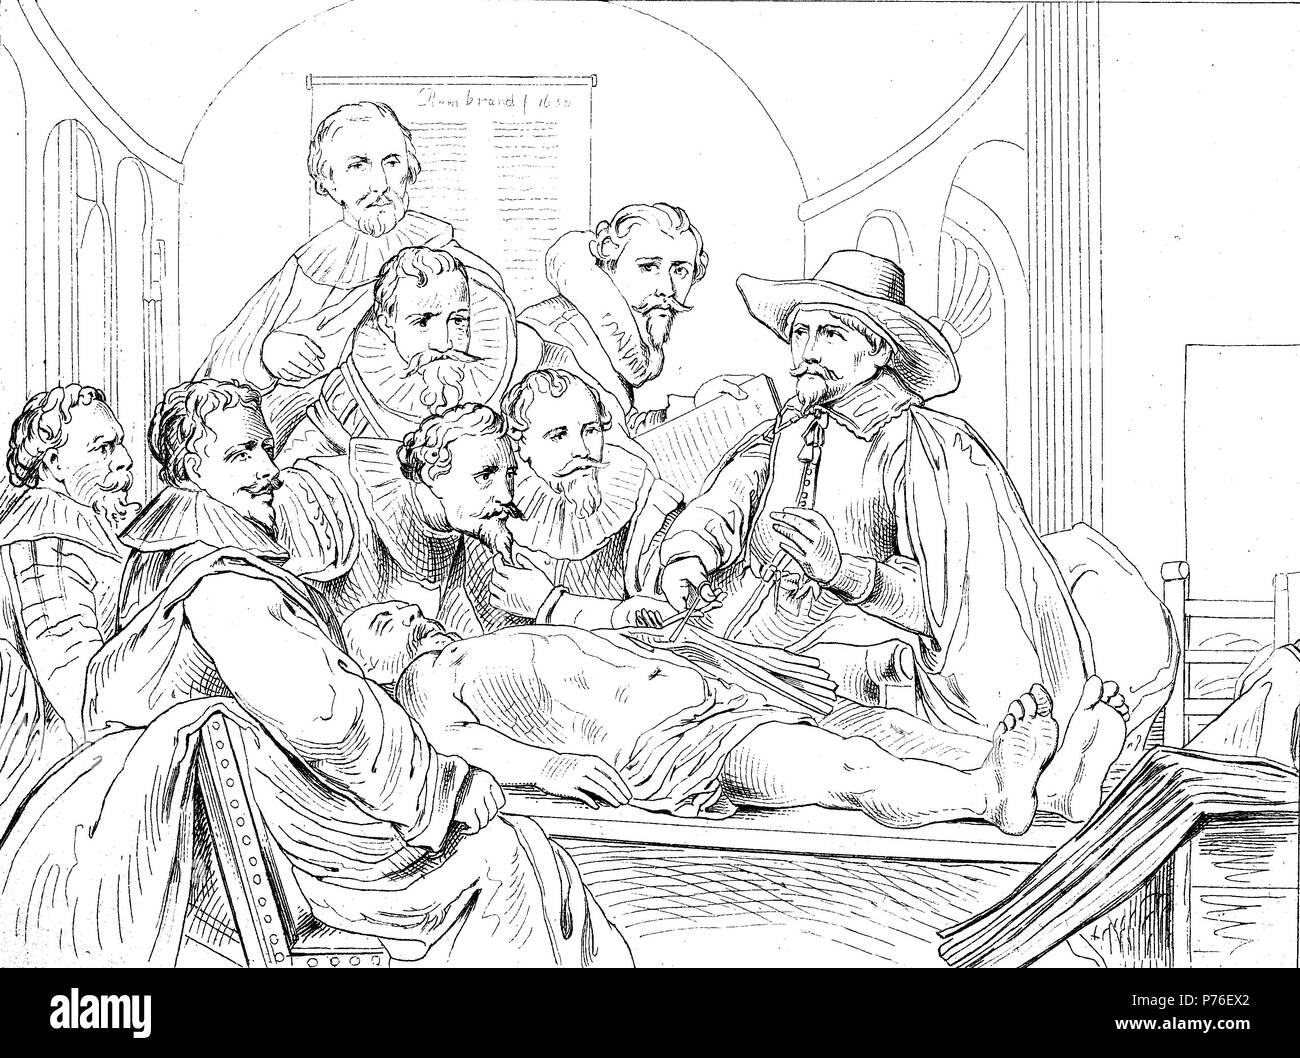 Dorable Who Painted The Anatomy Lesson Image - Human Anatomy Images ...